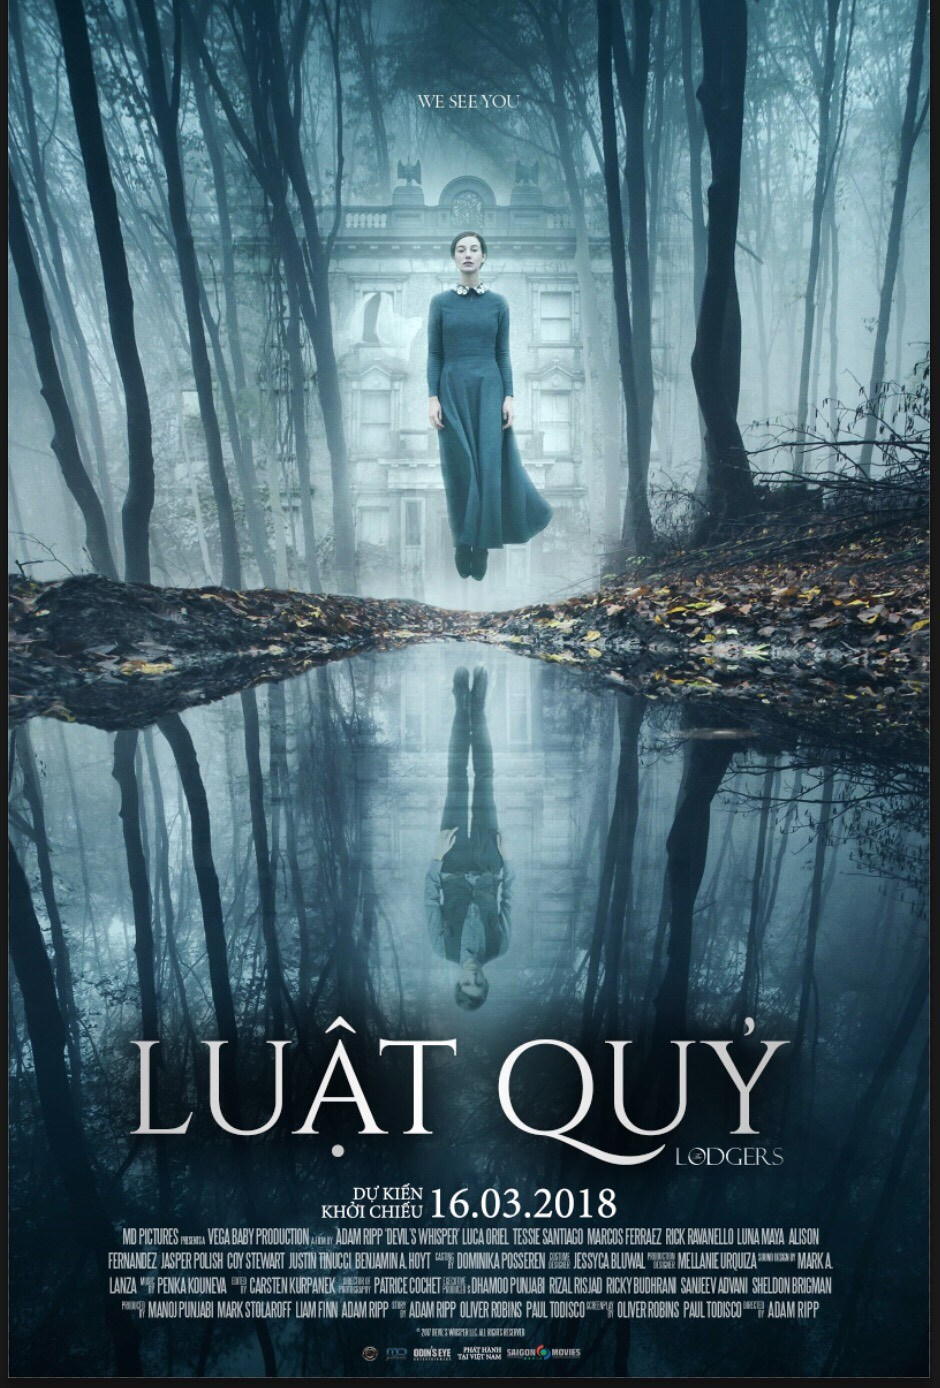 Luật Quỷ The Lodgers